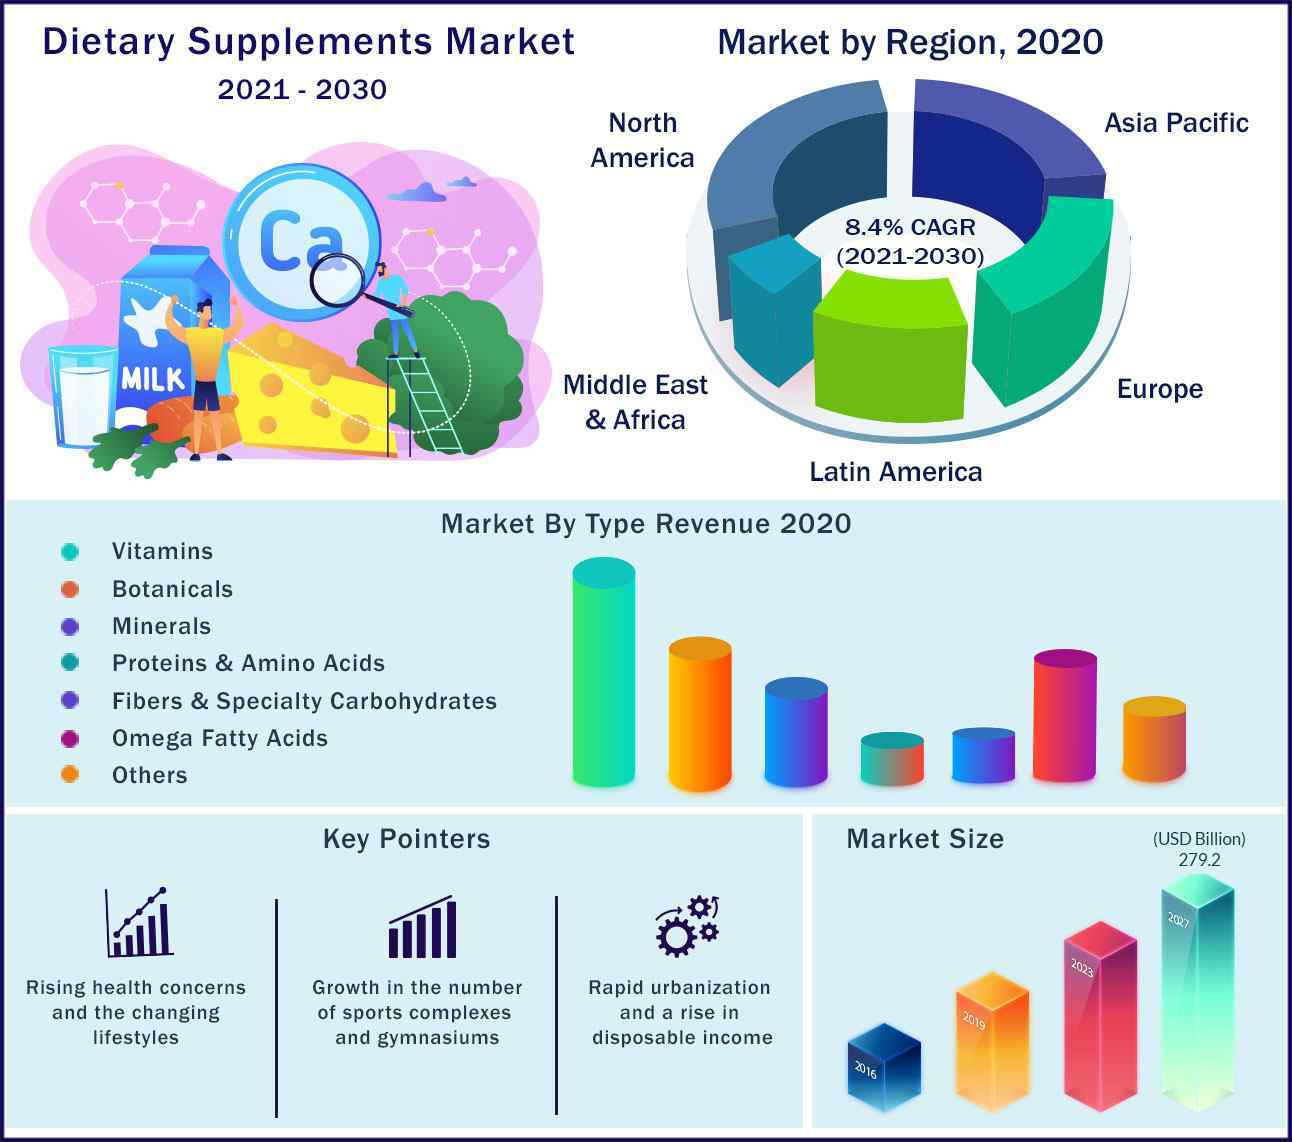 Global Dietary Supplements Market 2021 to 2030